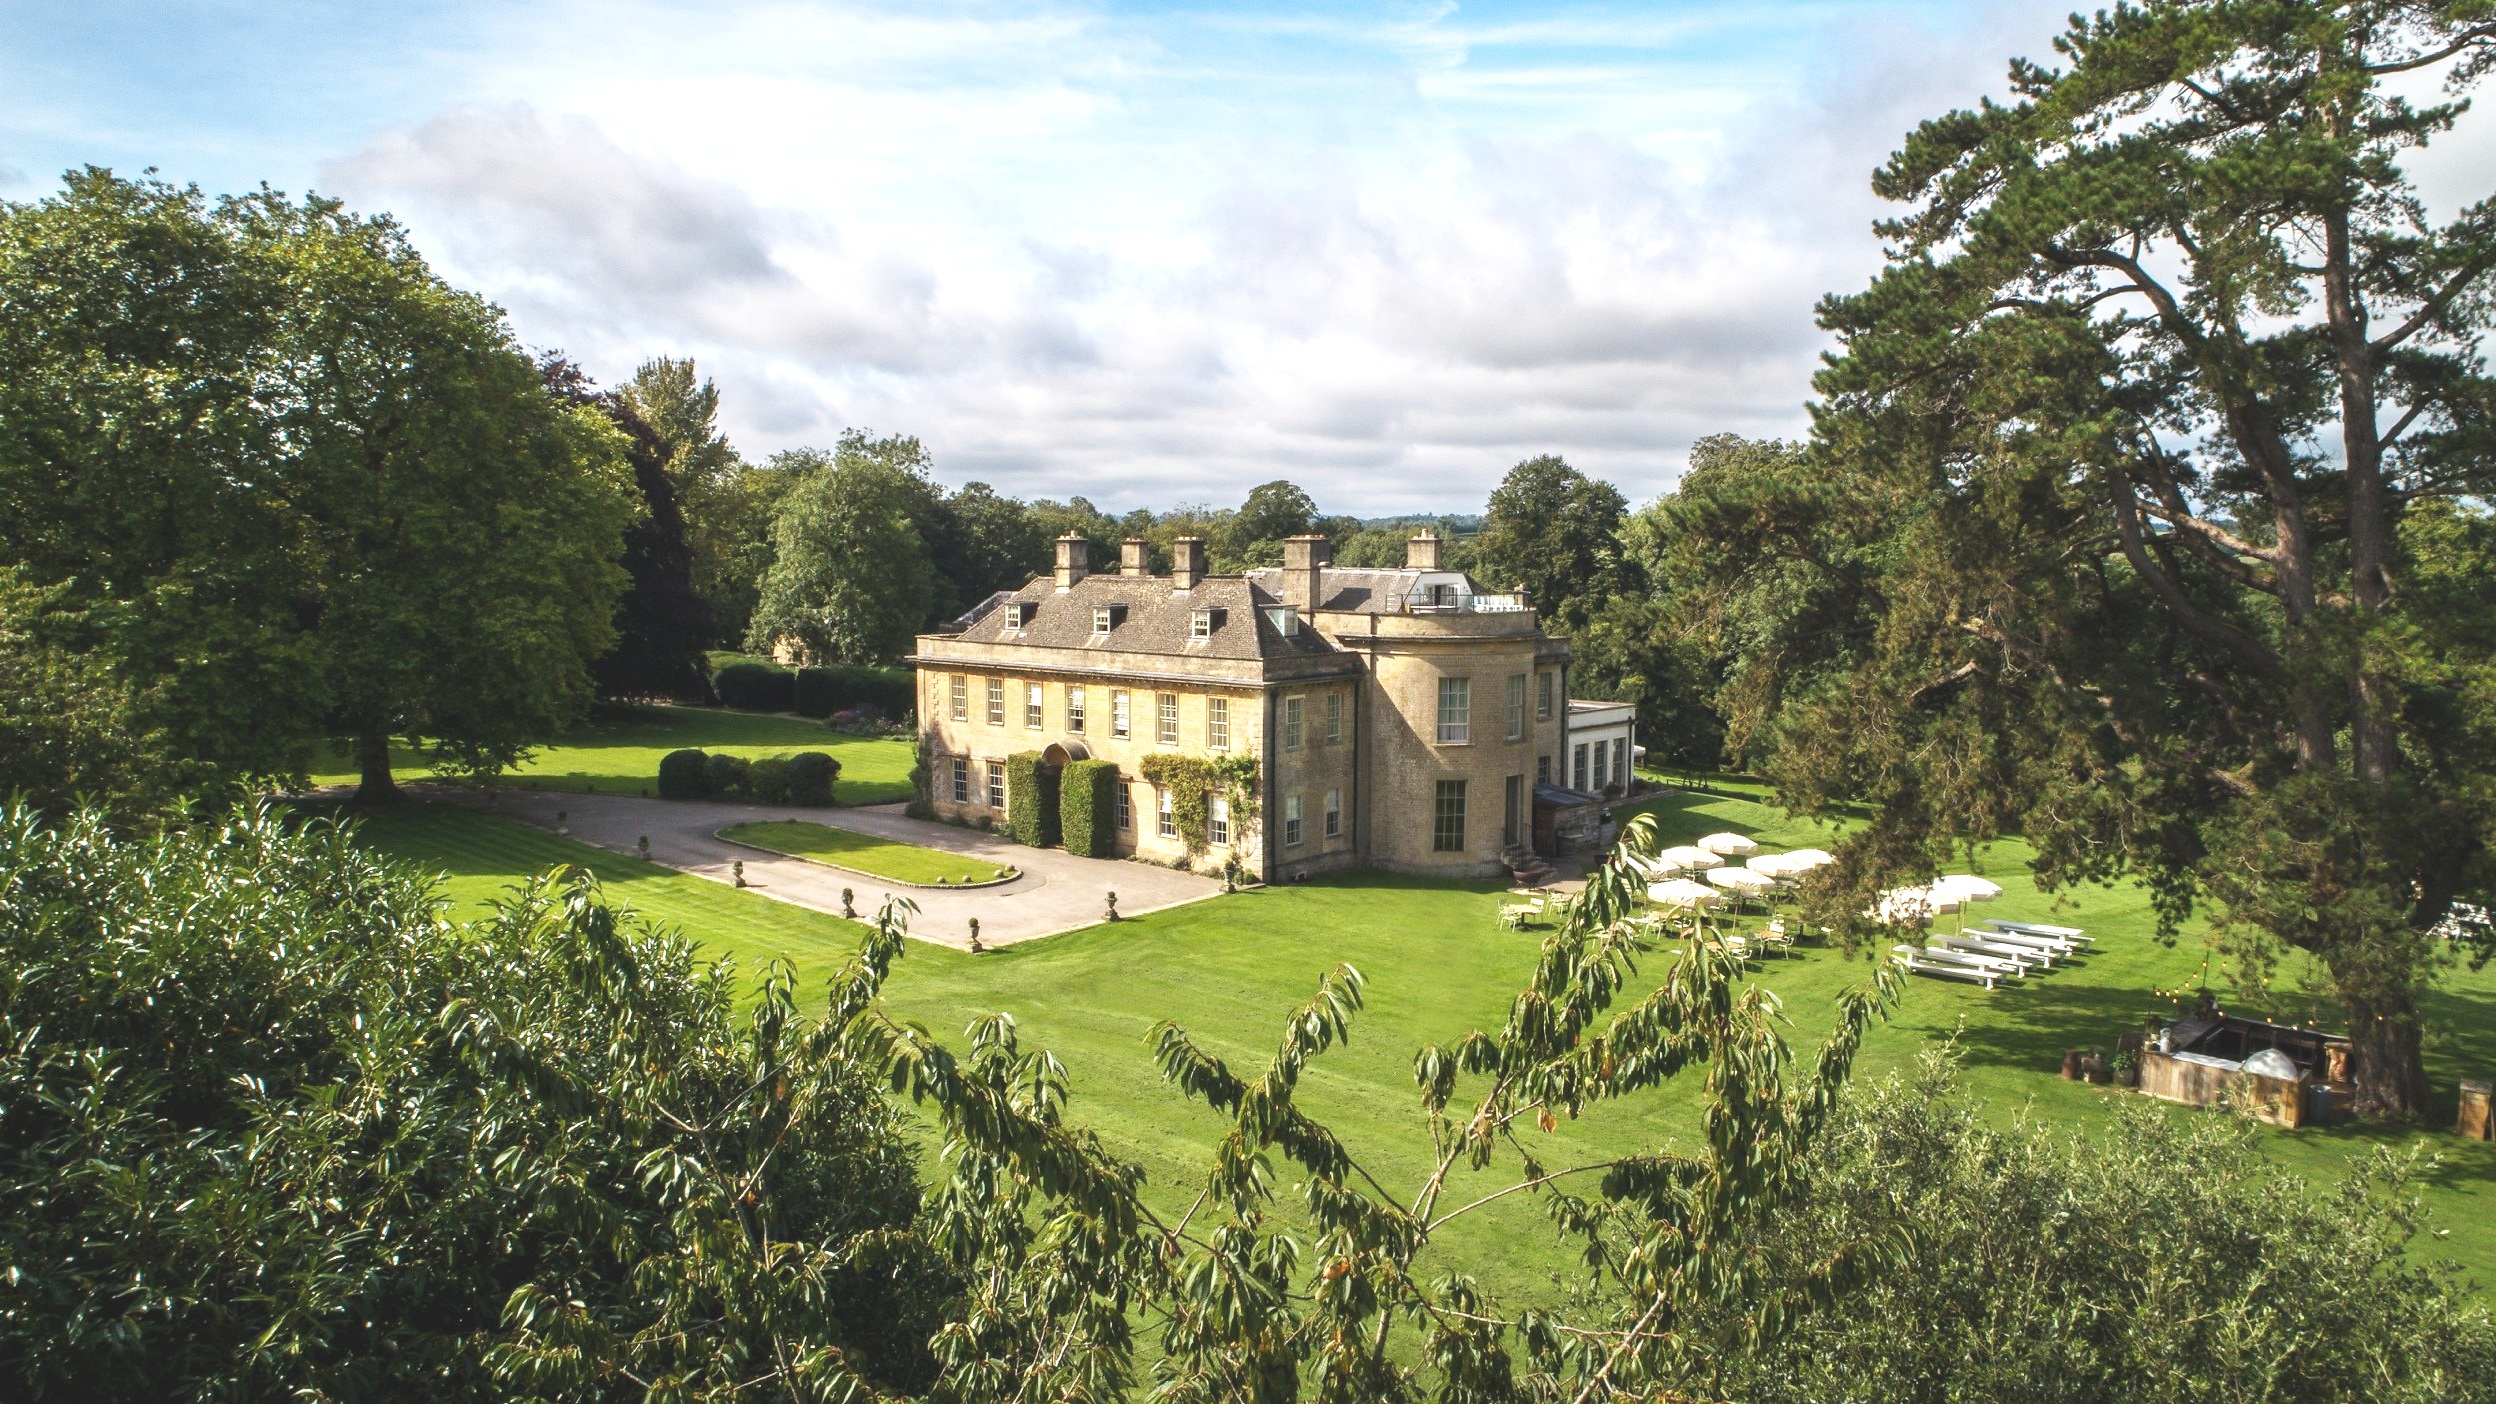 October Nourish and move retreat at Babington House - Find out more here